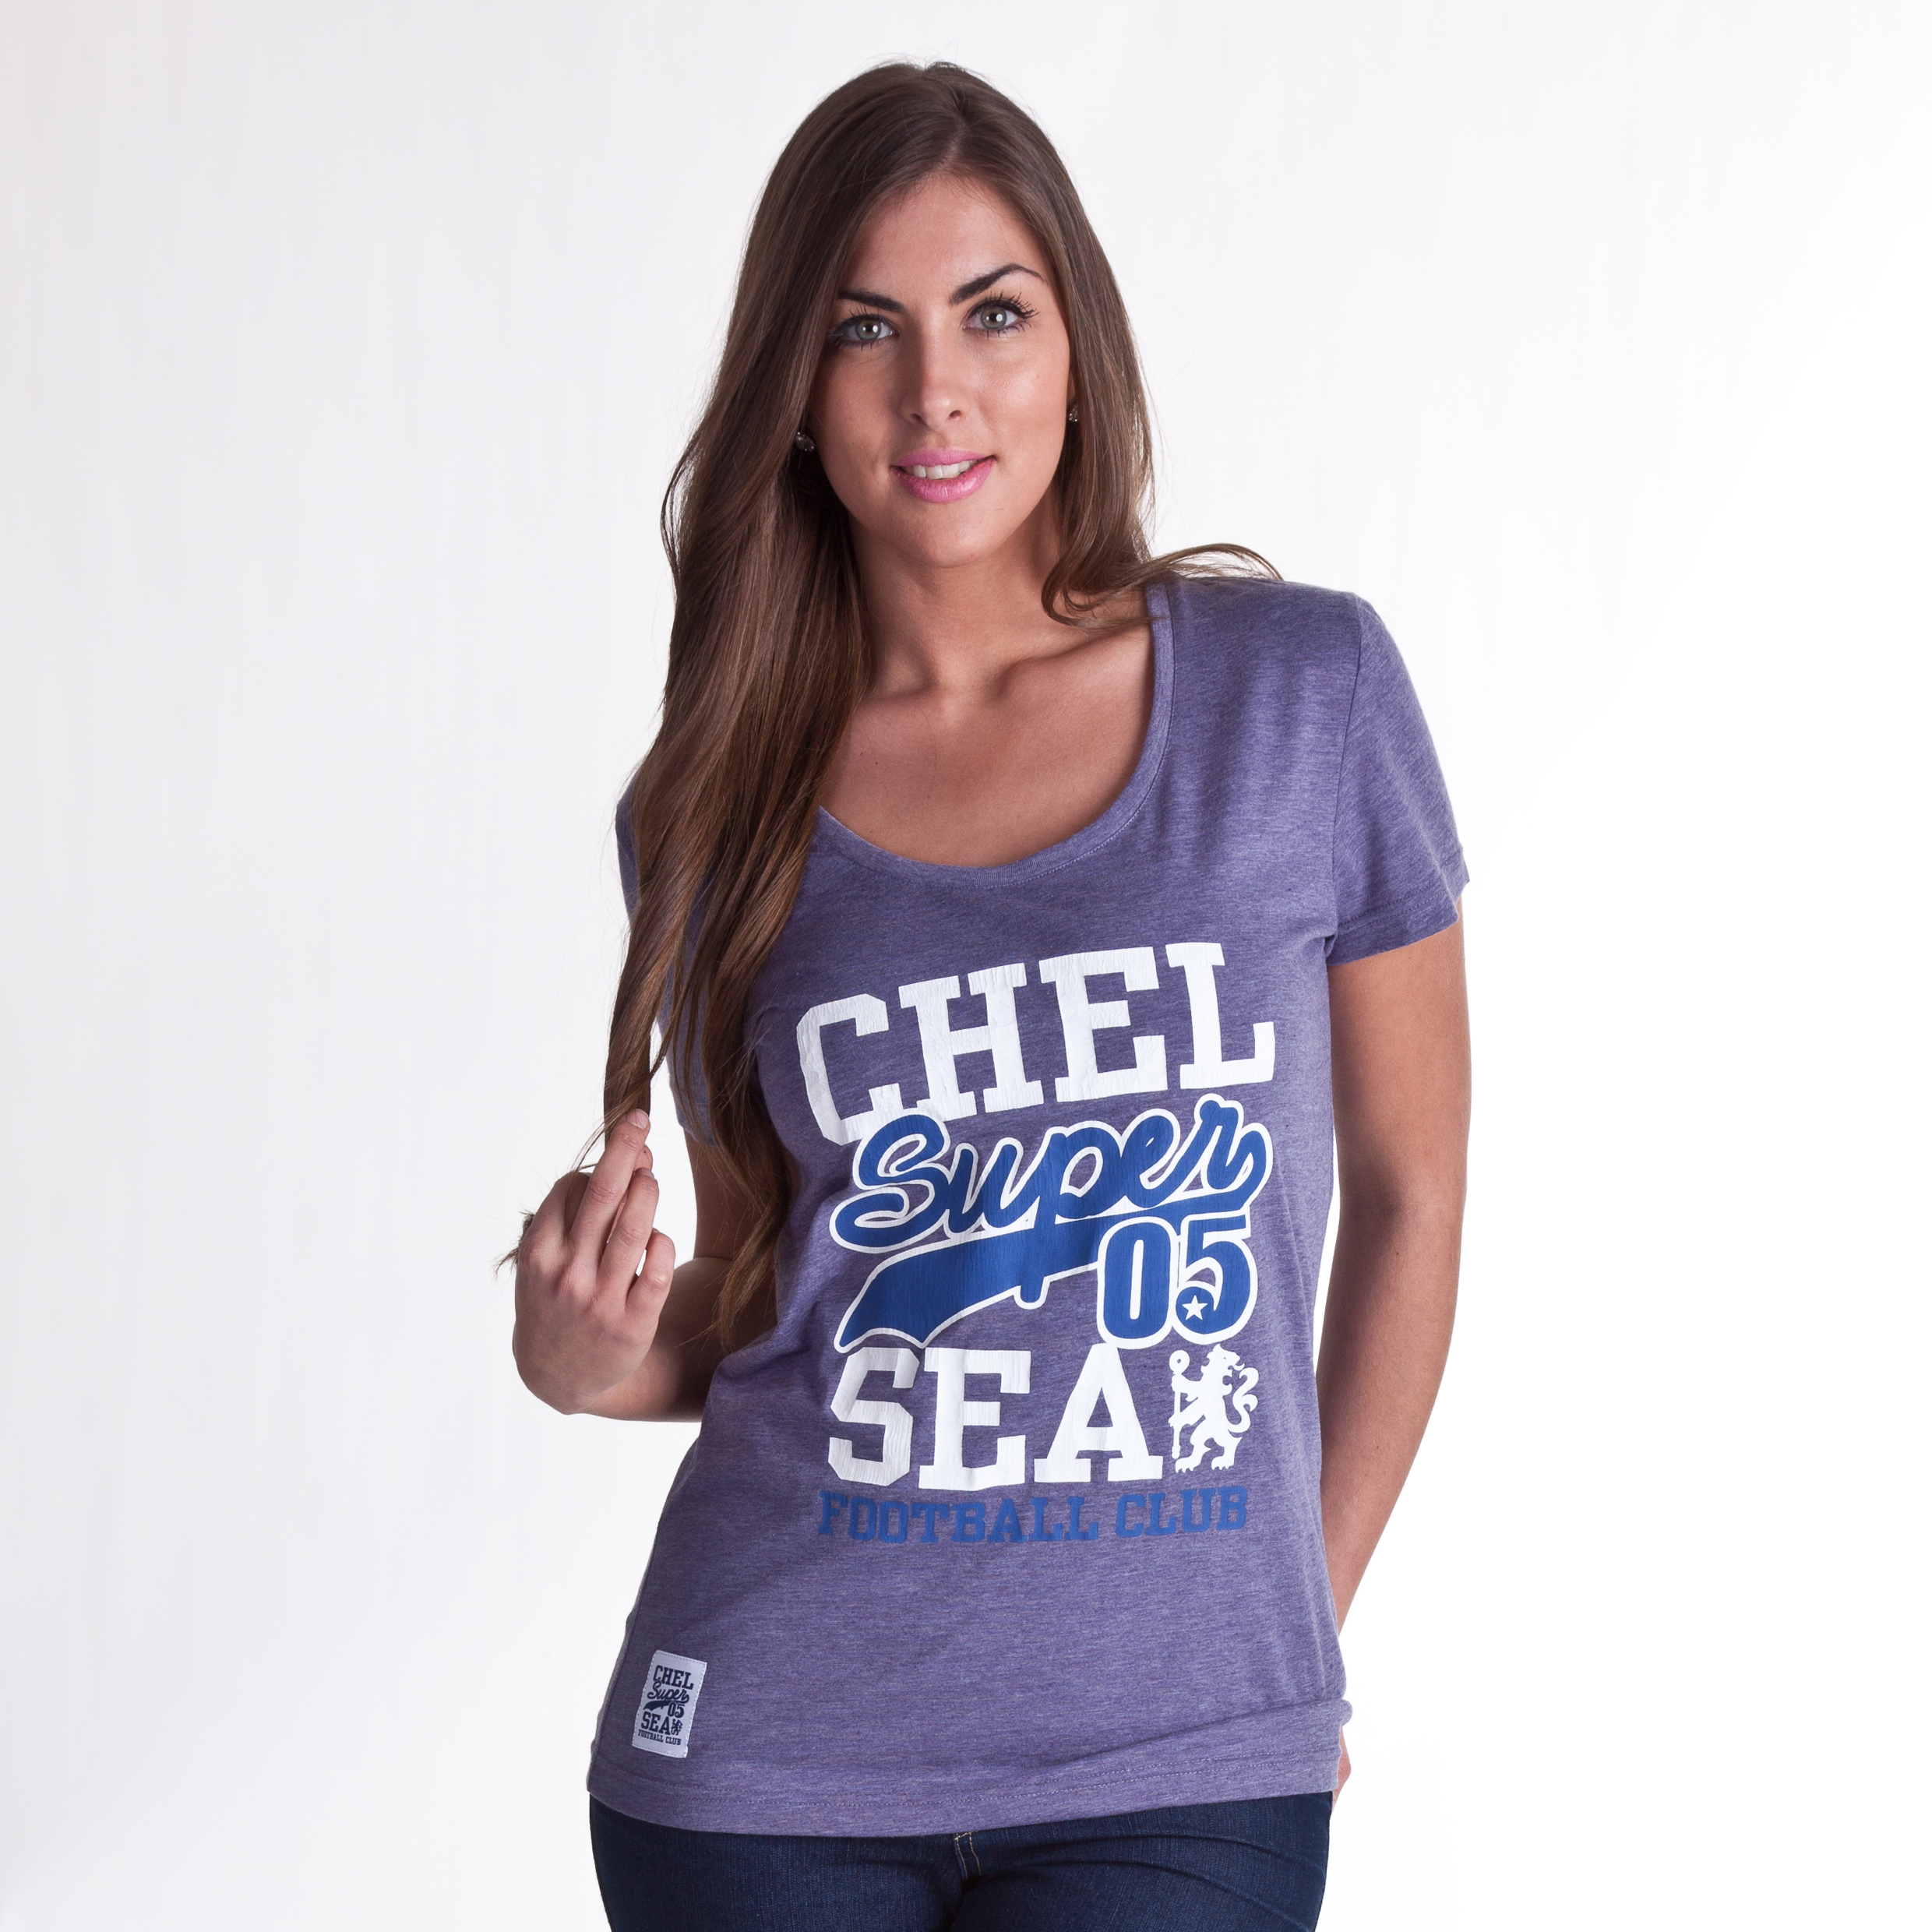 Chelsea Super 05 Crew Neck T-Shirt - Heron Marl - Womens